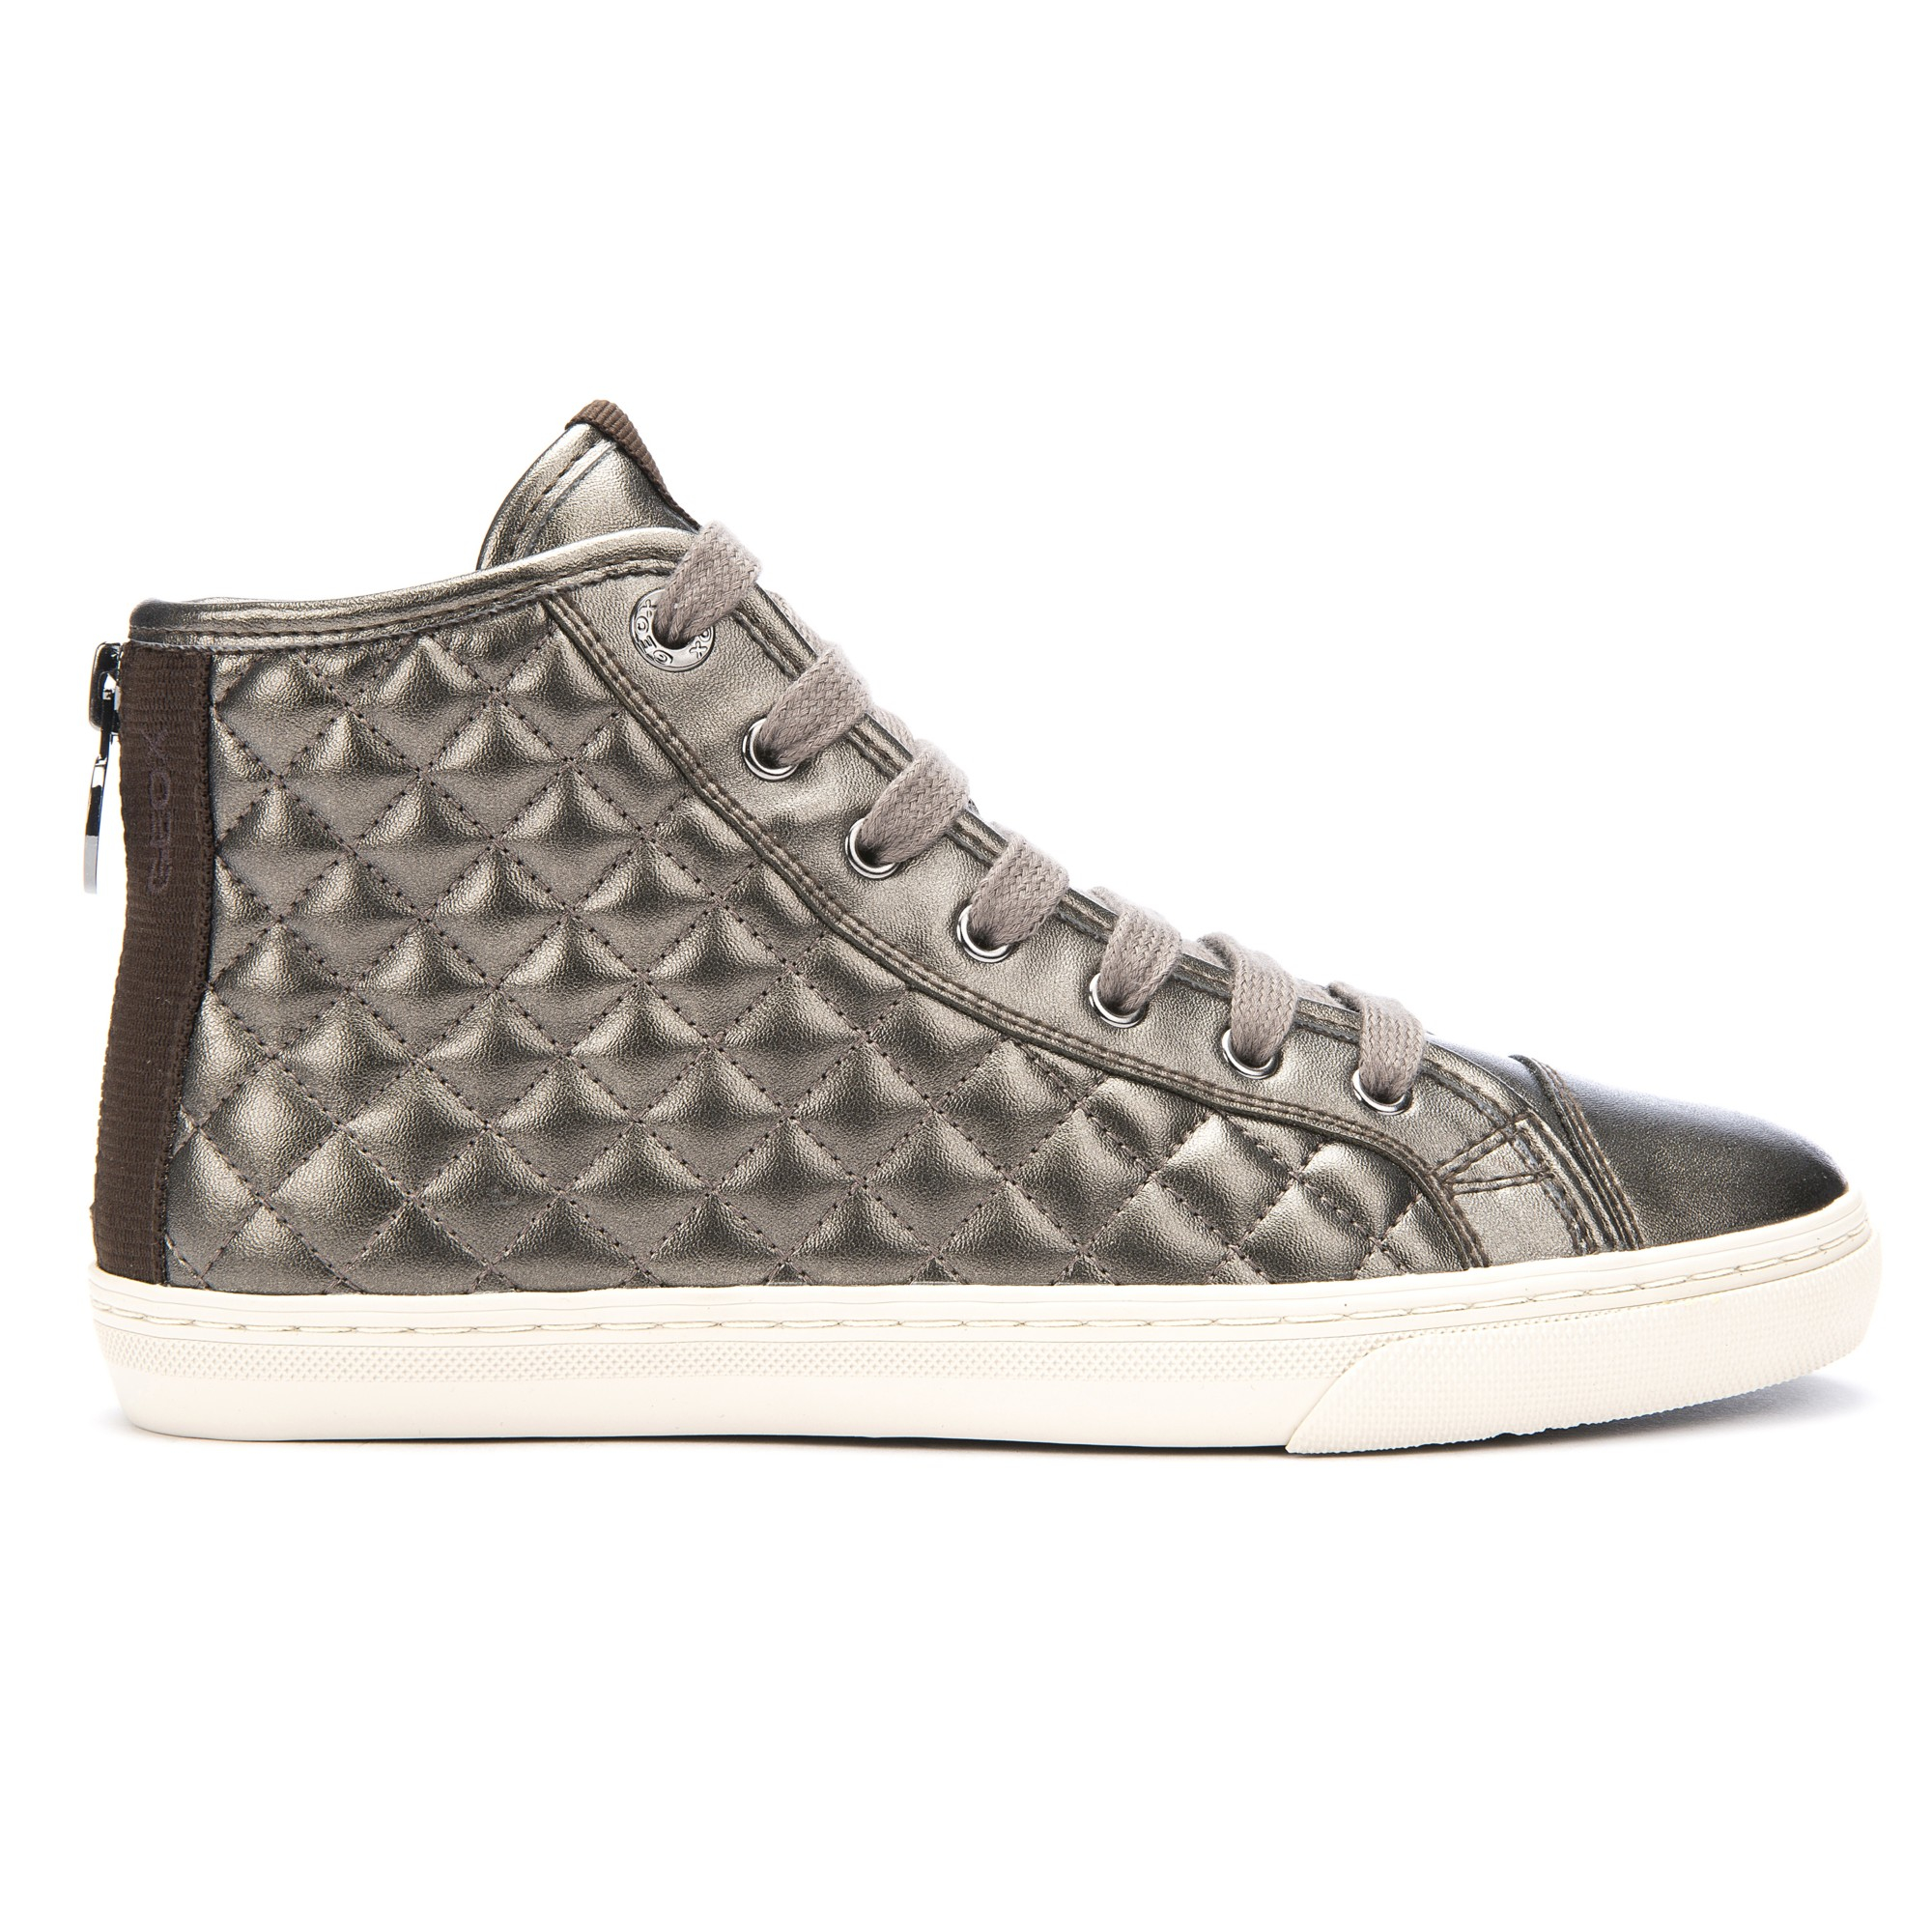 0746d5c3de4 Geox New Club Quilted High Top Trainers in Metallic for Men - Lyst